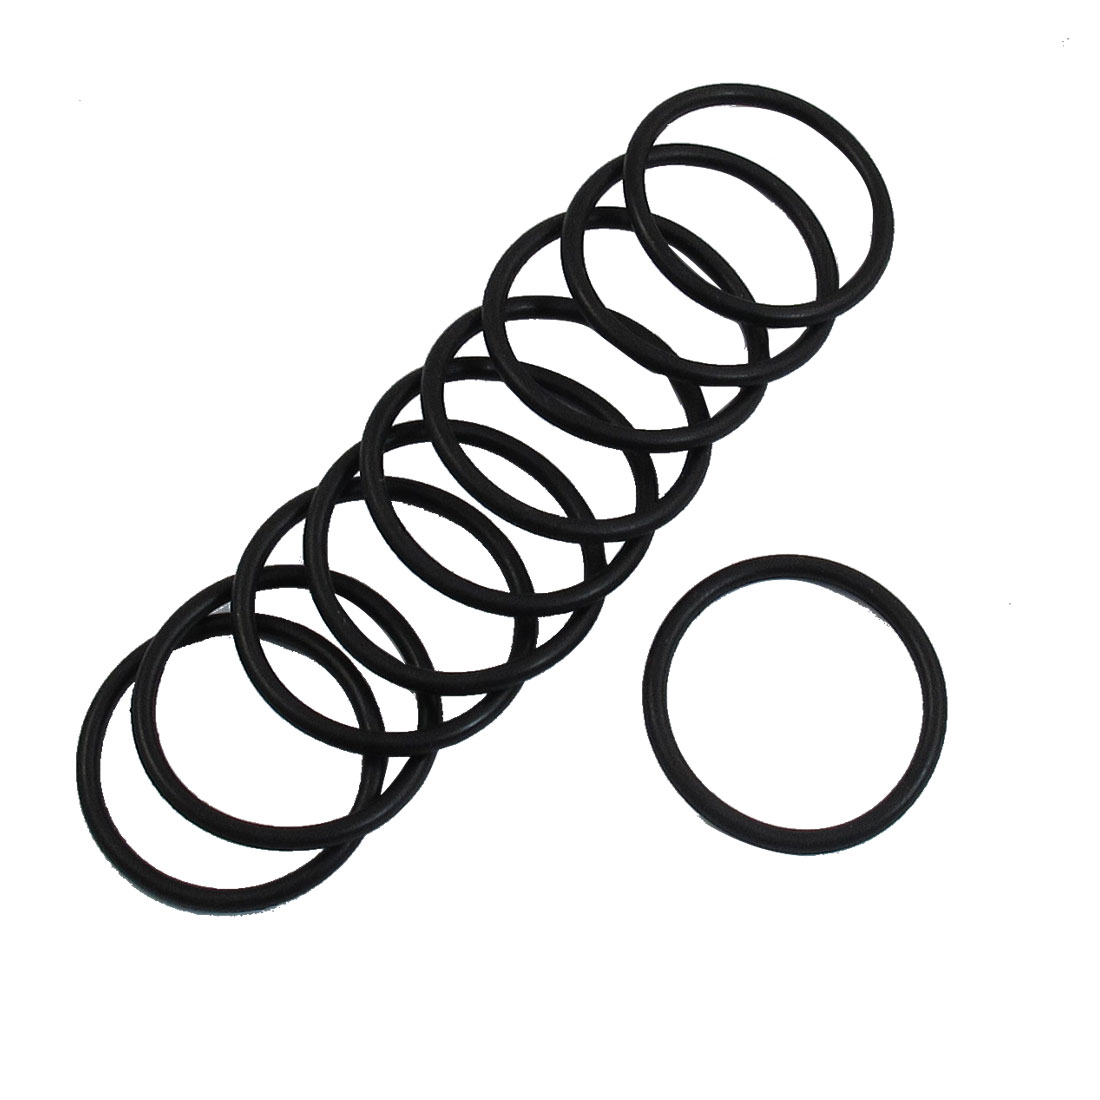 10 Pcs 31mm x 2.4mm Industrial Flexible Black Rubber O Ring